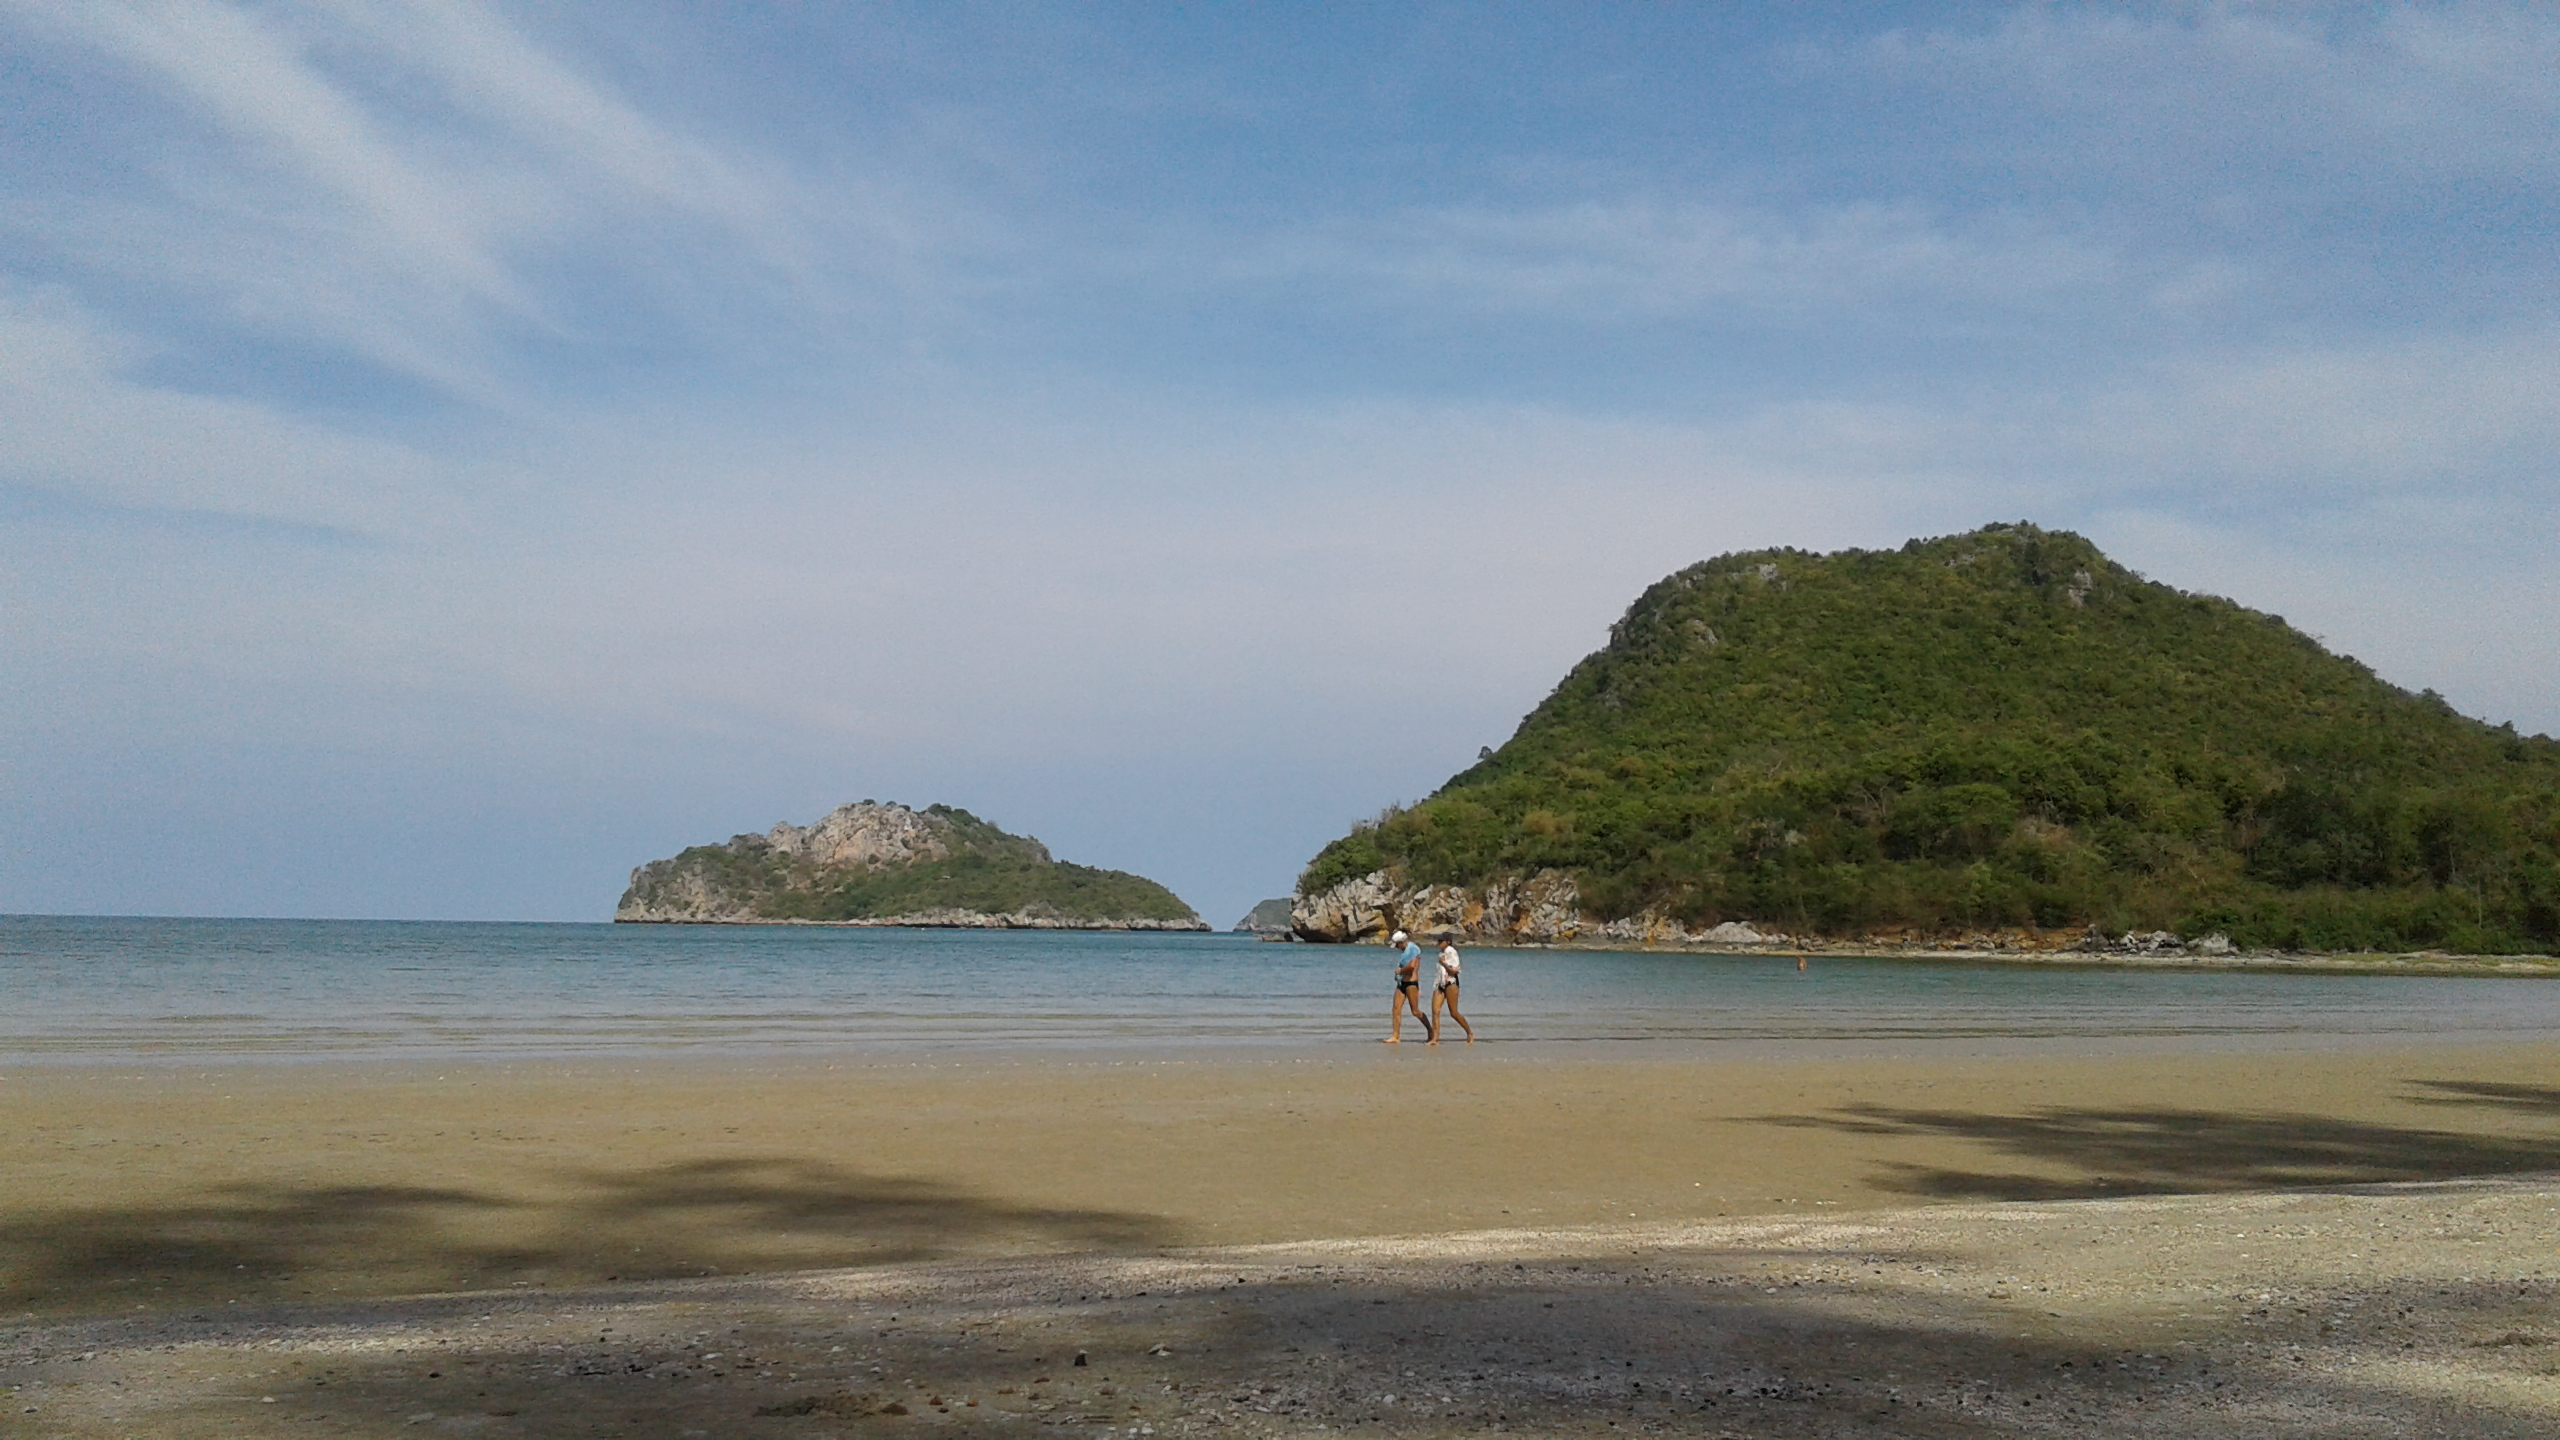 prachuap kirikhan bay beach